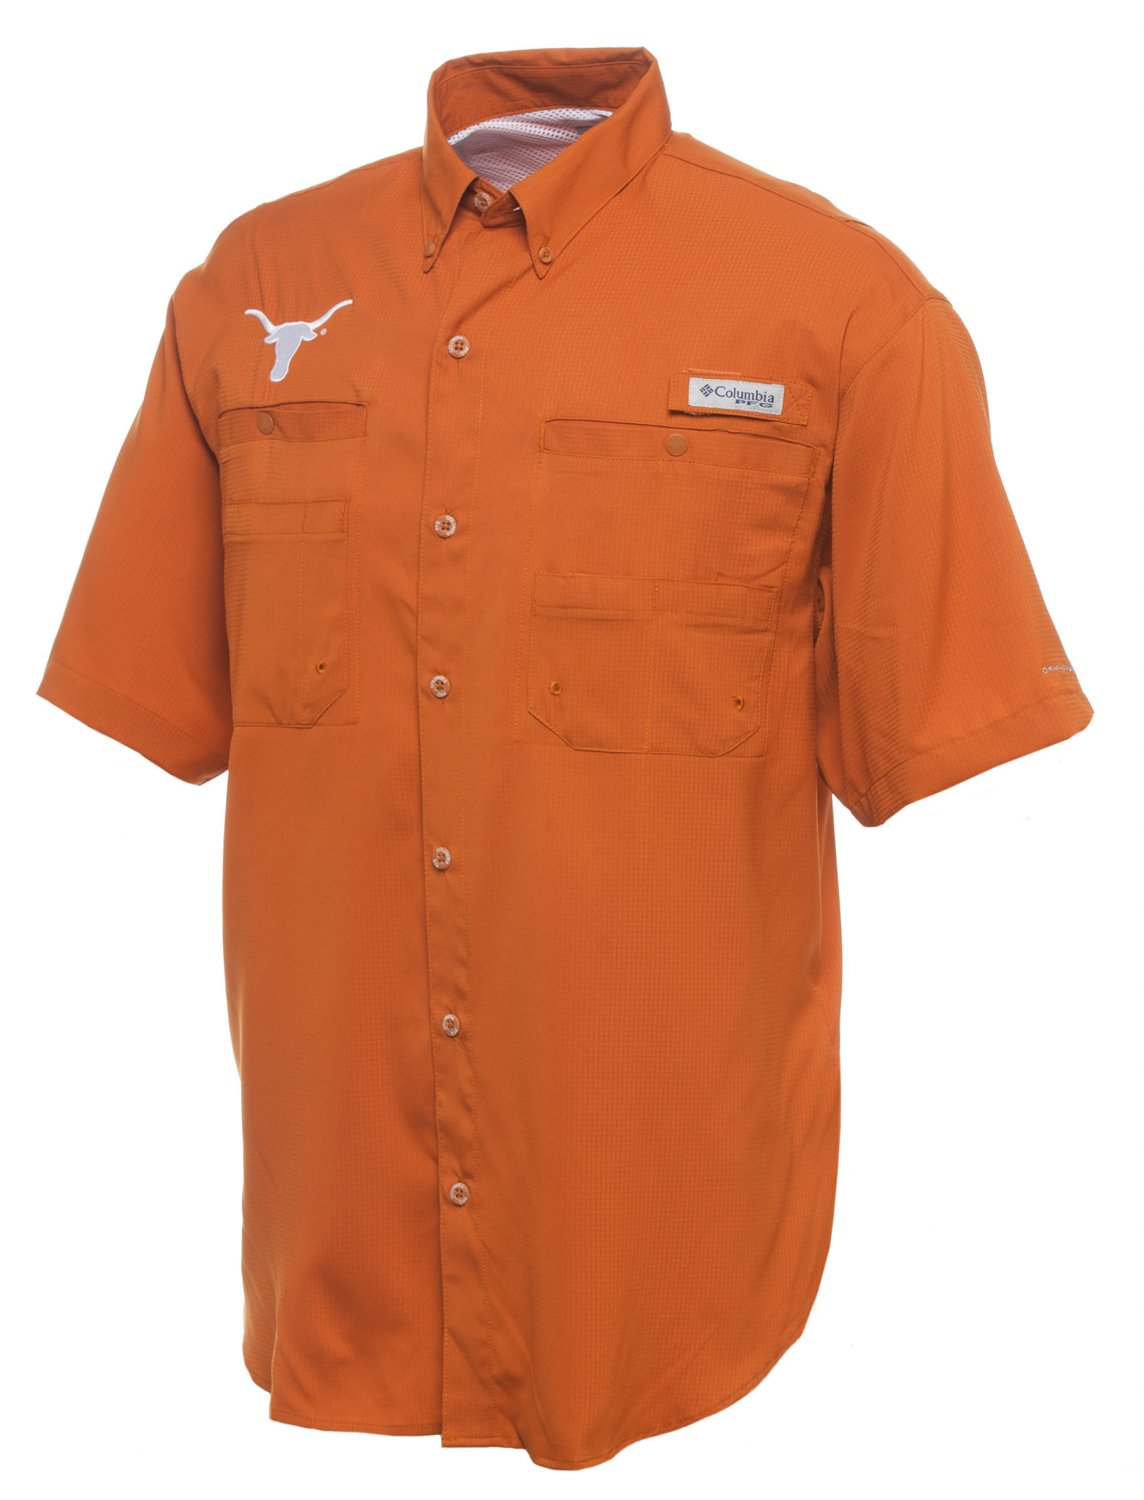 c2eebcb2f41949 Display product reviews for Columbia Sportswear Men s University of Texas  Collegiate Tamiami Short Sleeve Shirt